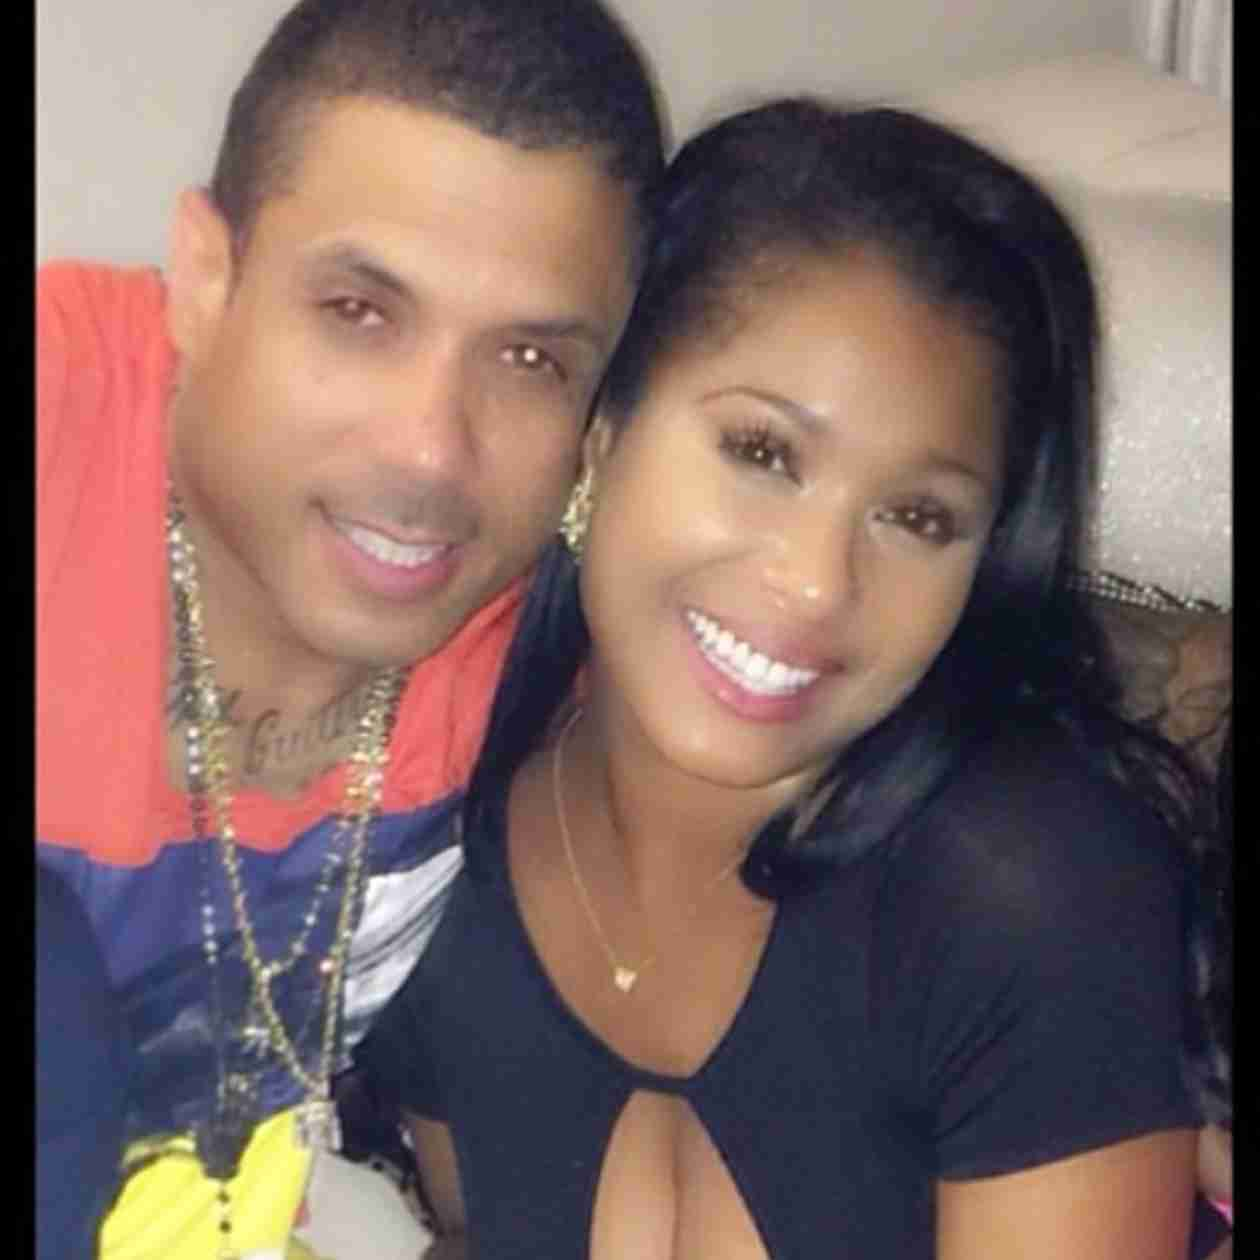 Benzino Says Stevie J. Is Jealous of His Relationship With Althea Heart